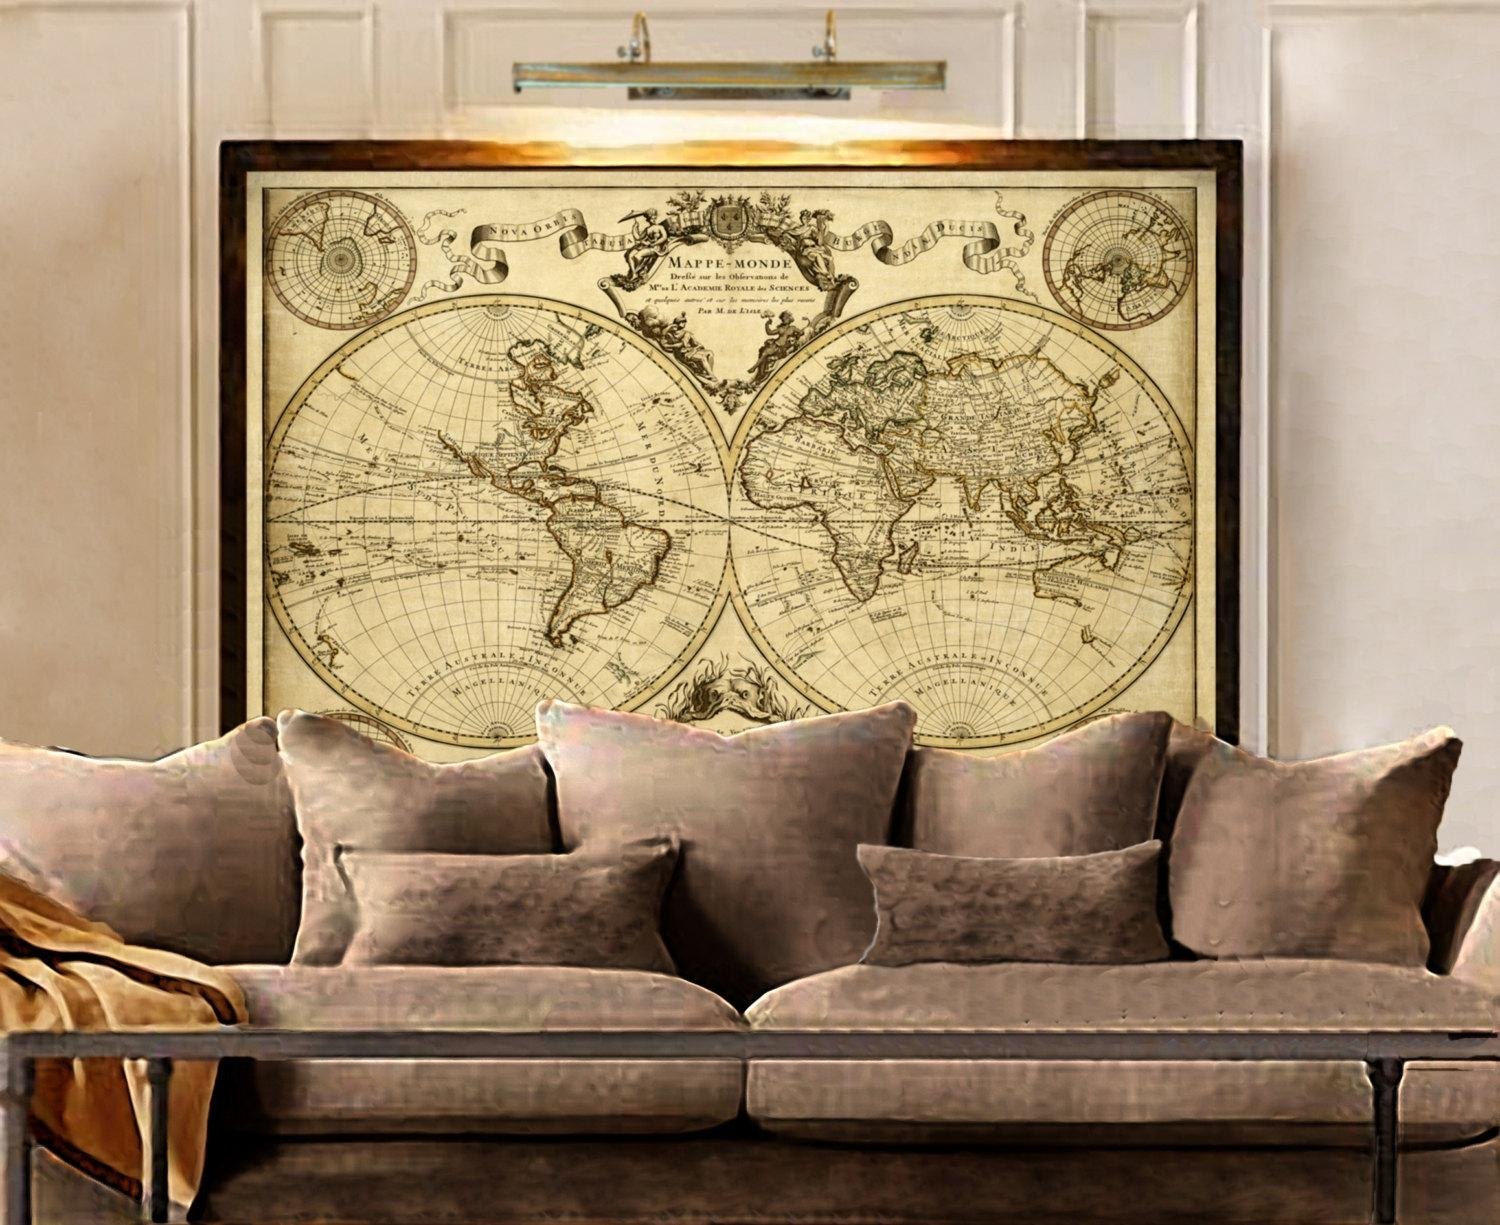 L'isle's 1720 Old World Map Historic Map Antique Style Intended For Antique Map Wall Art (Image 11 of 20)